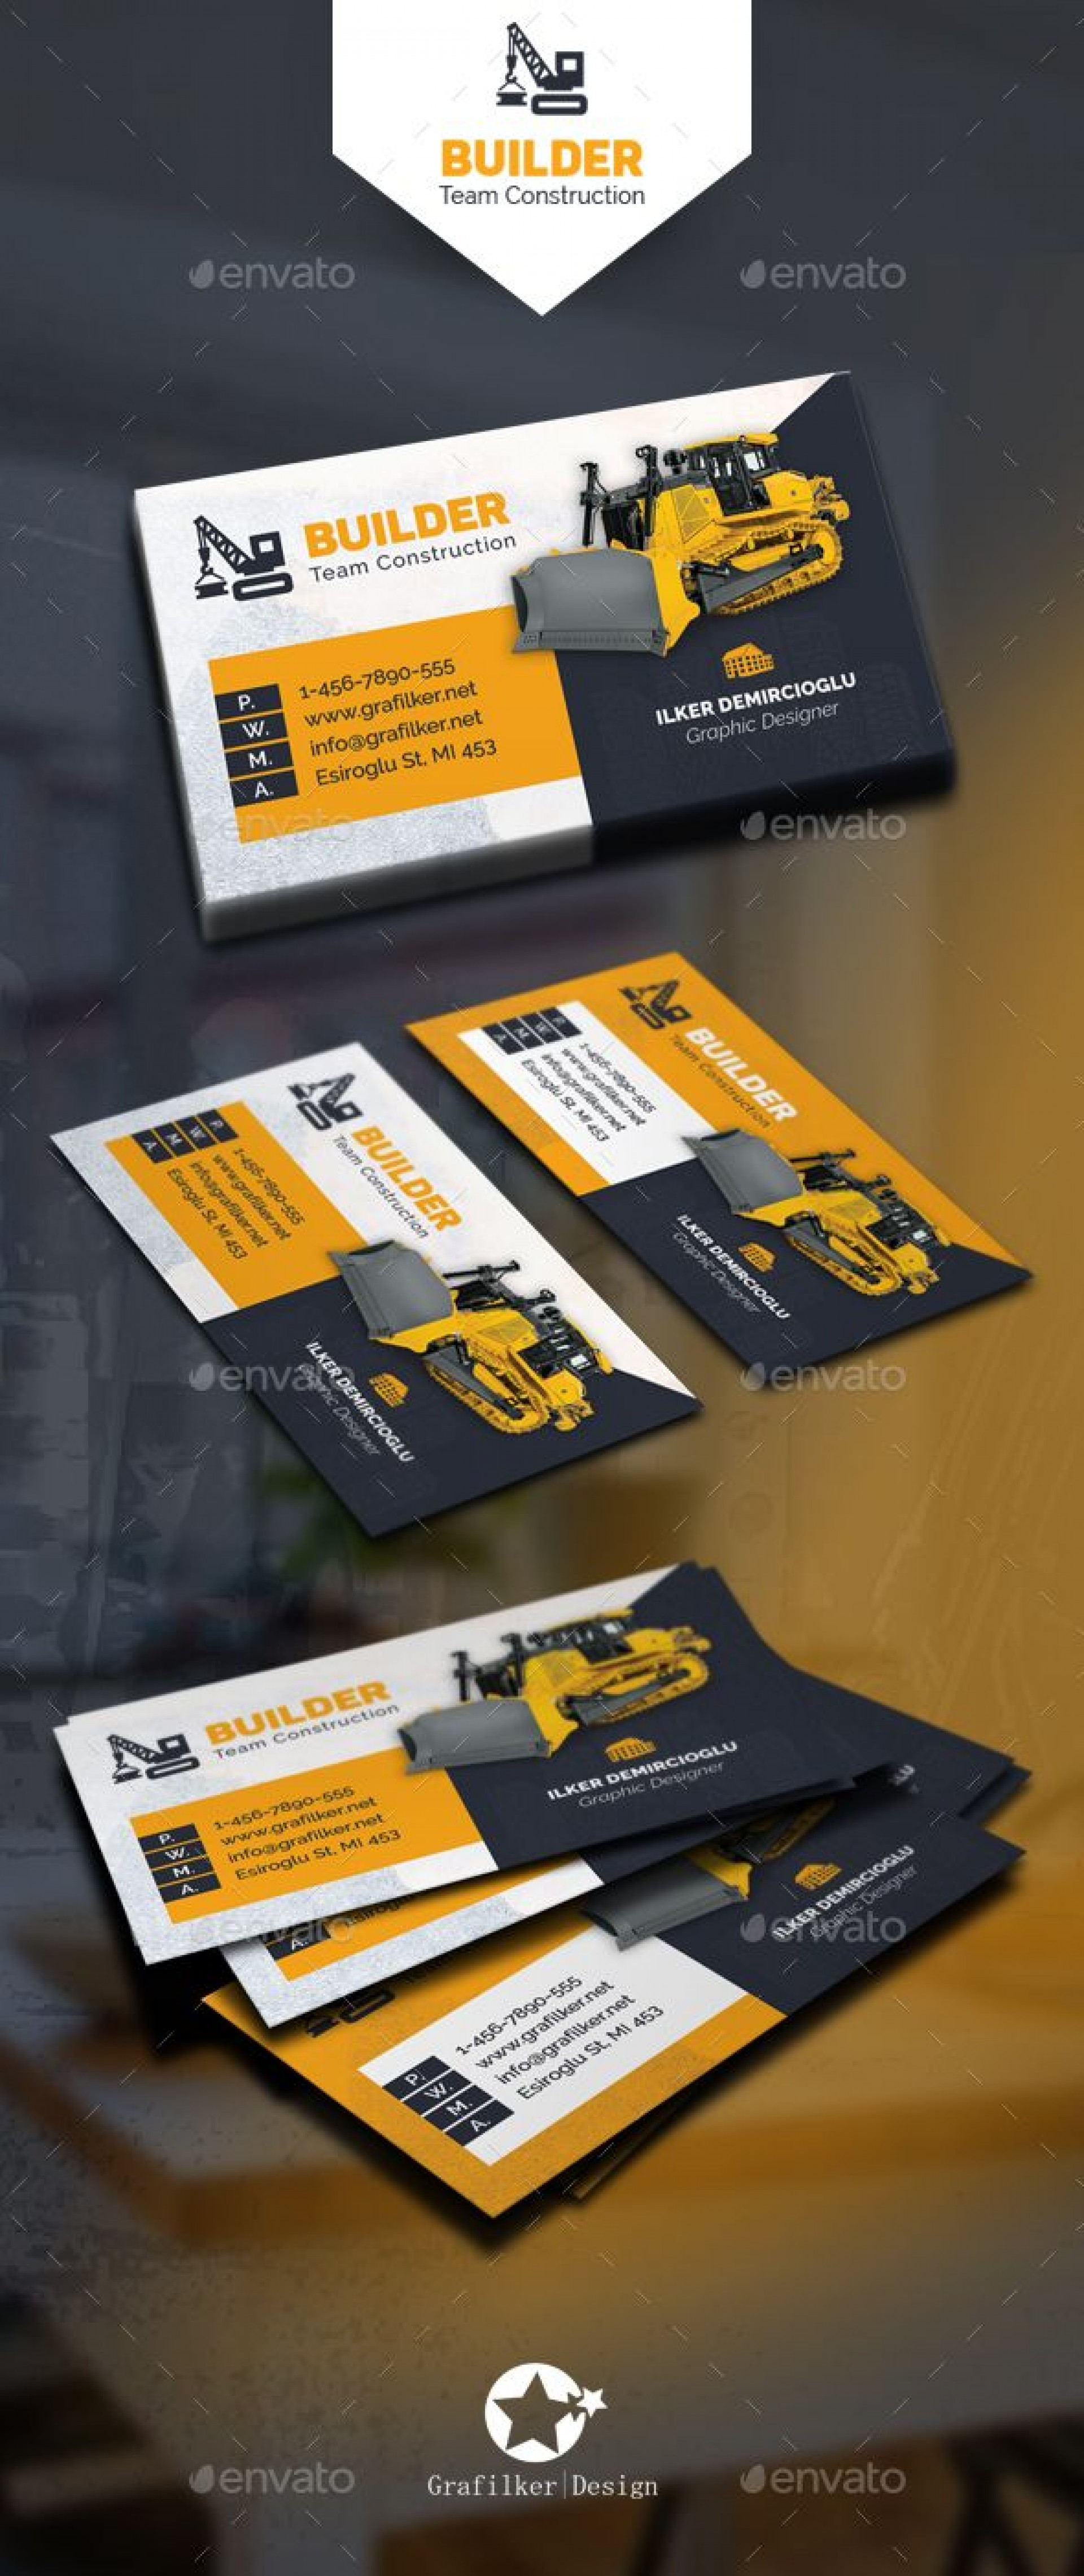 000 Magnificent Construction Busines Card Template Picture  Templates Visiting Company Format Design Psd1920